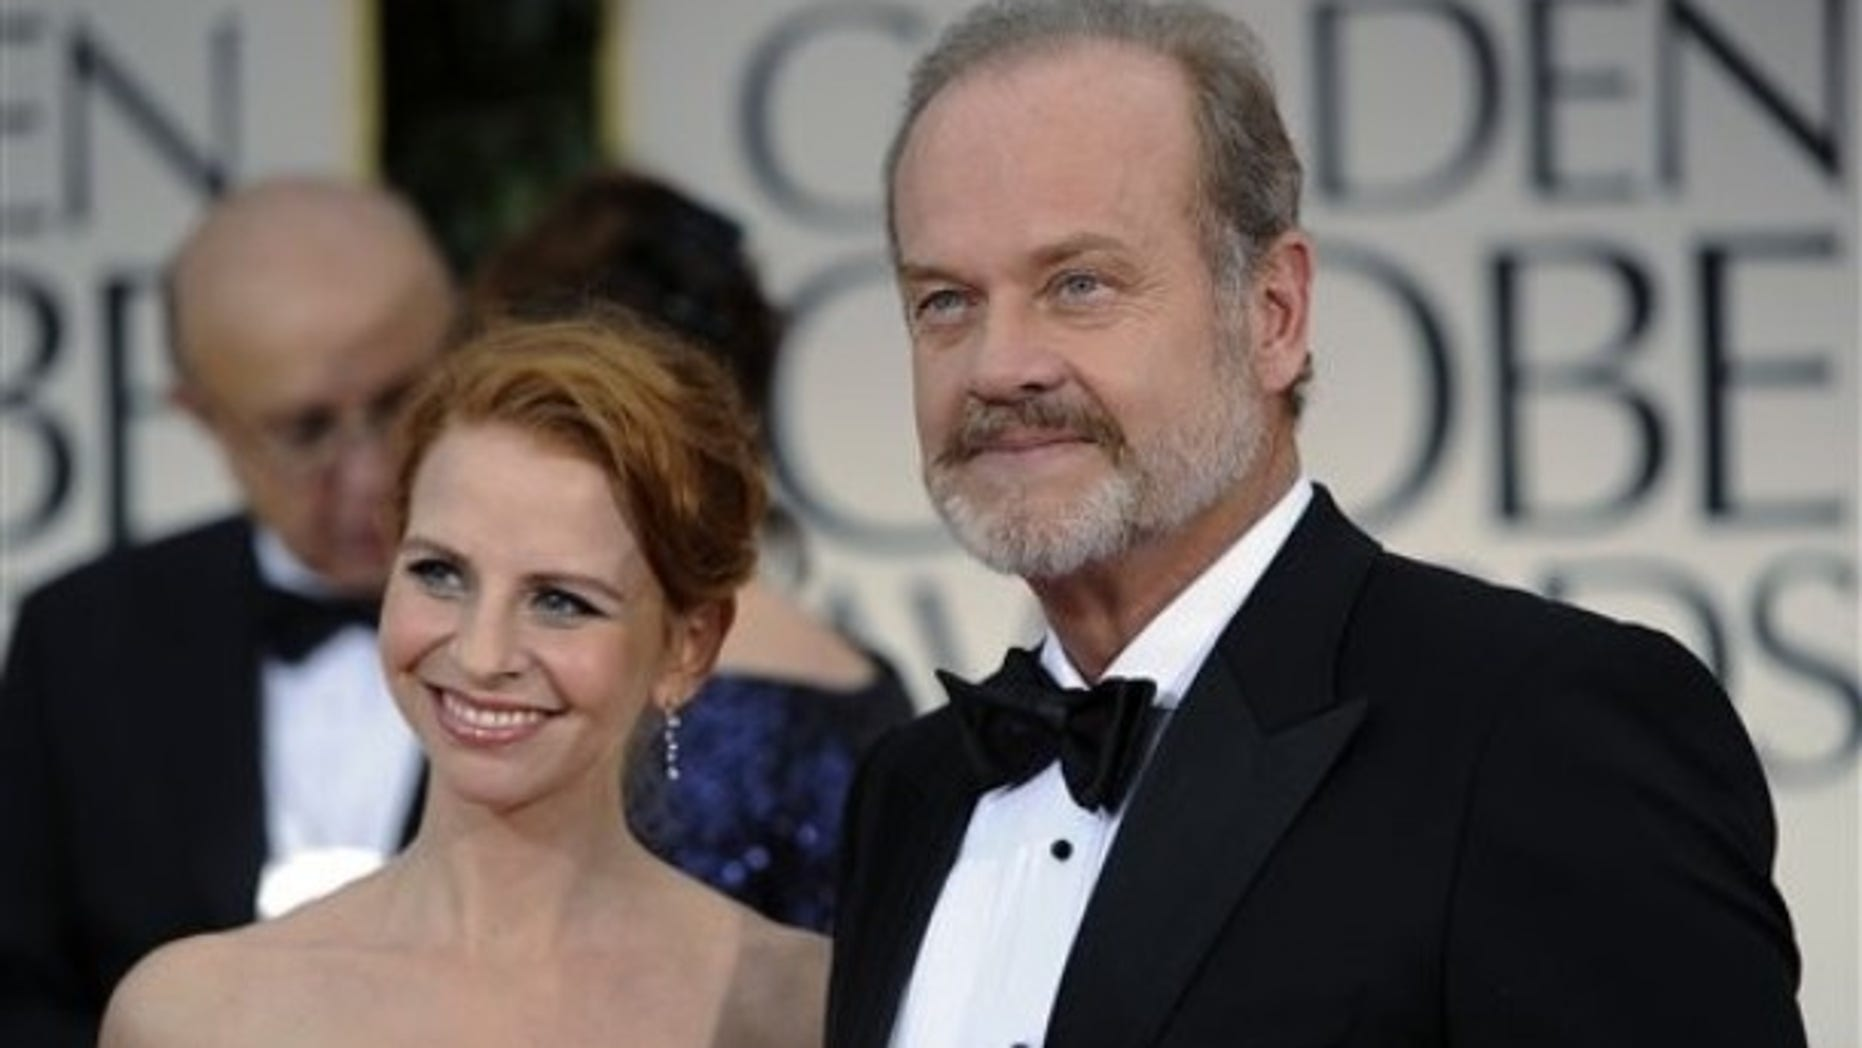 Kelsey Grammer and his wife Kayte Walsh arrive at the 69th Annual Golden Globe Awards Sunday, Jan. 15, 2012, in Los Angeles. (AP Photo/Chris Pizzello)